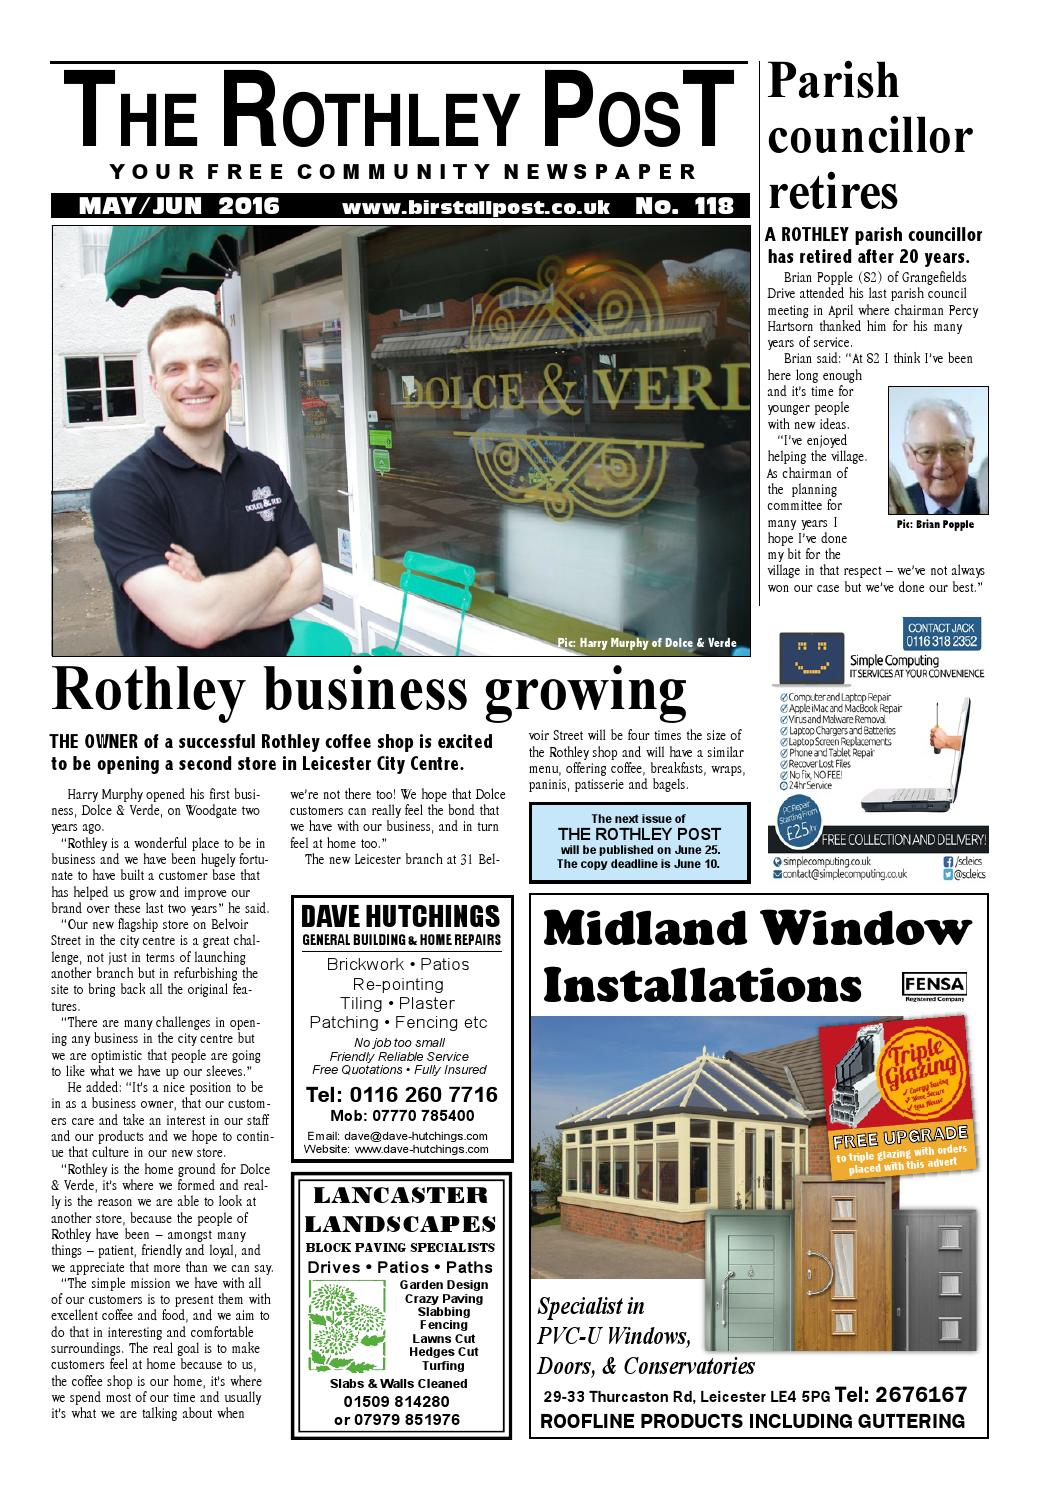 Rothley Post 118 May 2016 By The Birstall Issuu Quick Tip 16 Threeway Twoway Or Oneway Switch Misterfixit